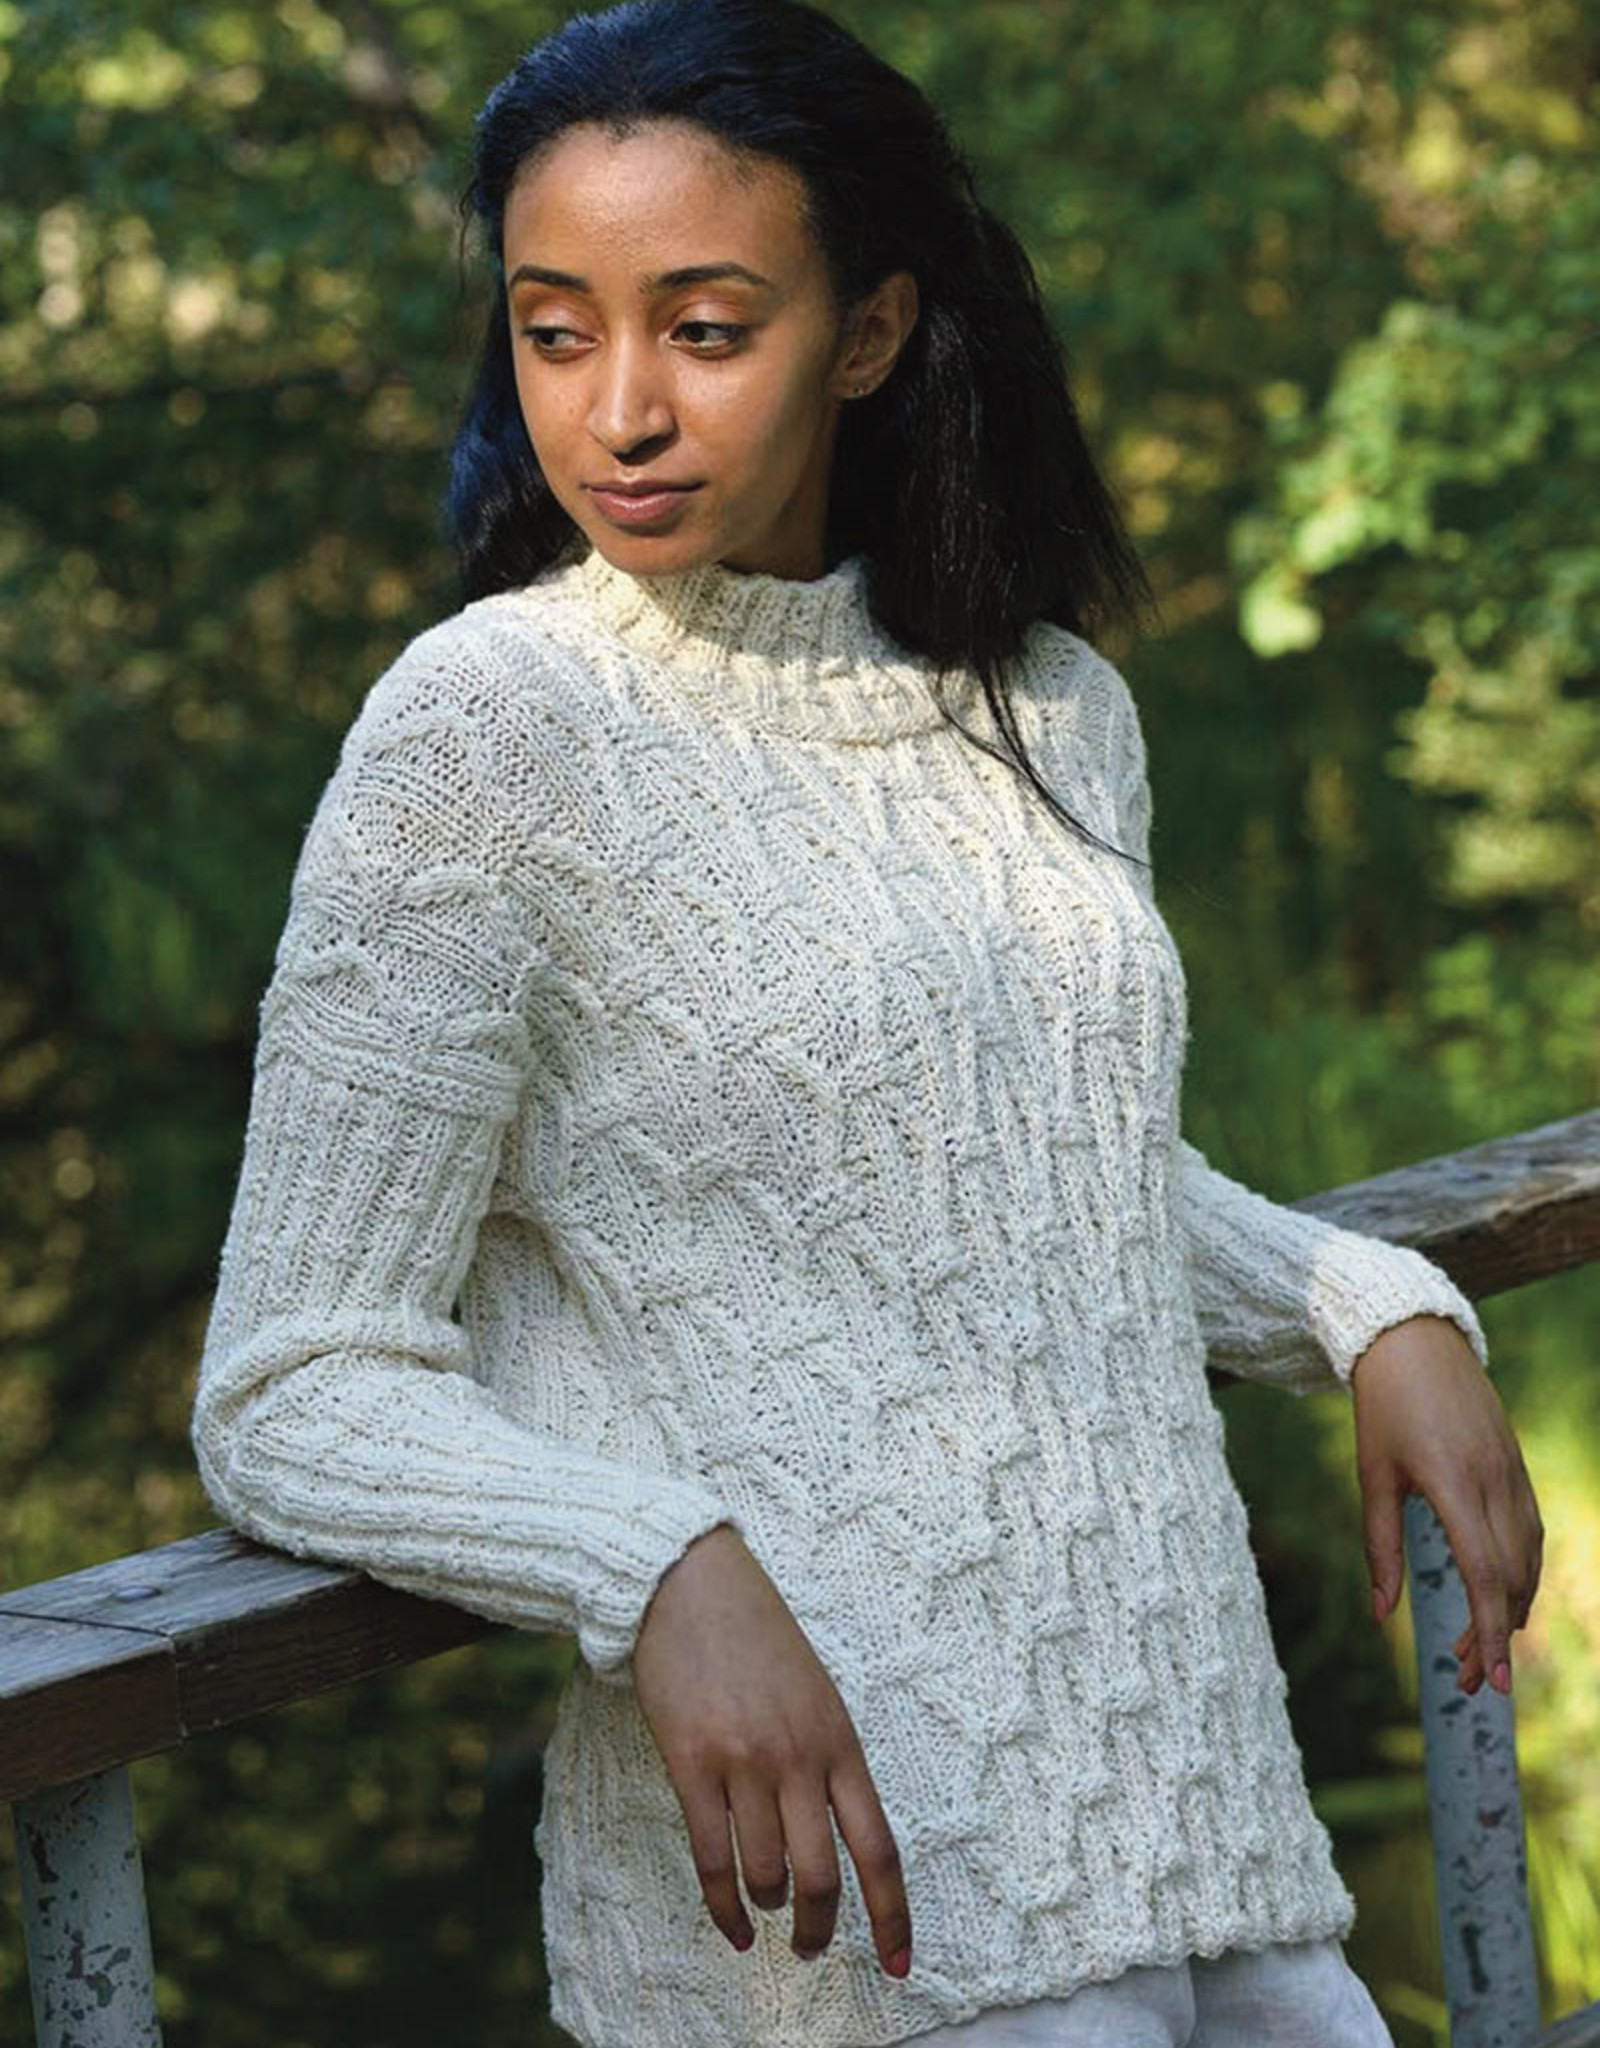 Rikki Sweater in Misty Wool